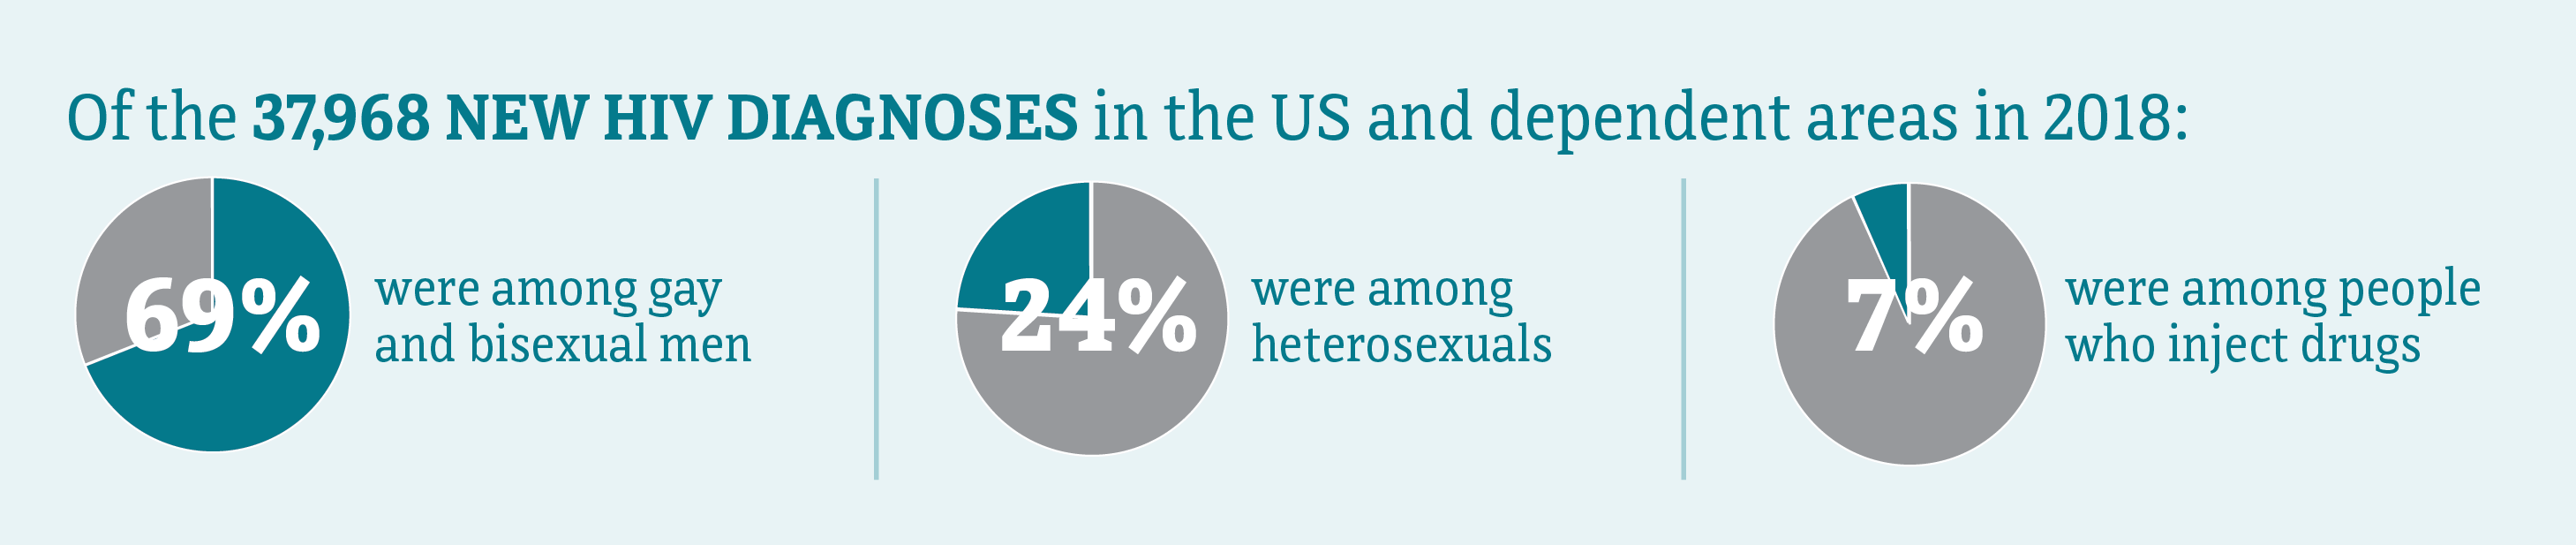 This banner shows 69% of the 37,968 new HIV diagnoses in the United States and dependent areas were among gay and bisexual men, 24% were among heterosexuals, and 7% were among people who inject drugs.